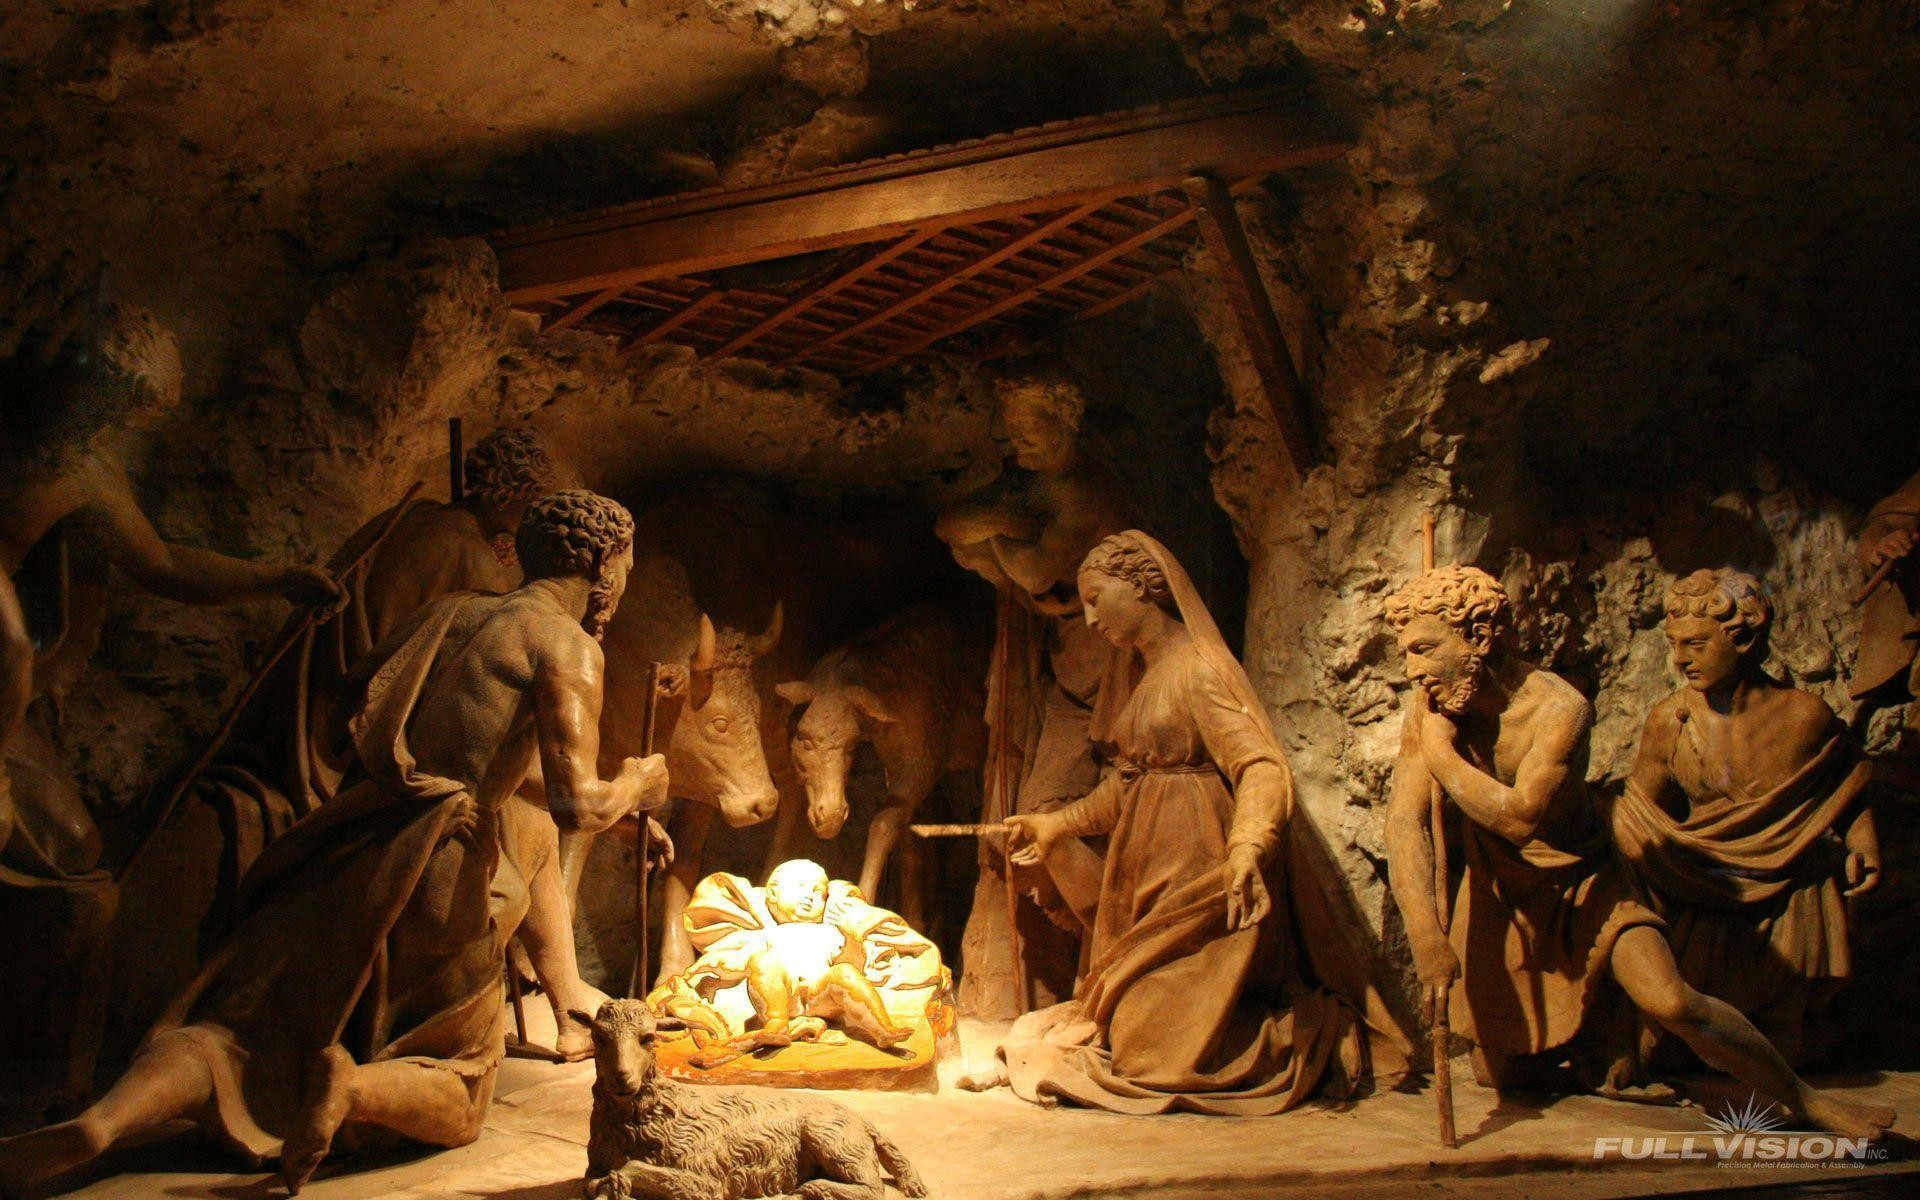 1920x1200 Nativity Christmas Wallpaper 28464 HD Wallpapers | wallpaperpretty.